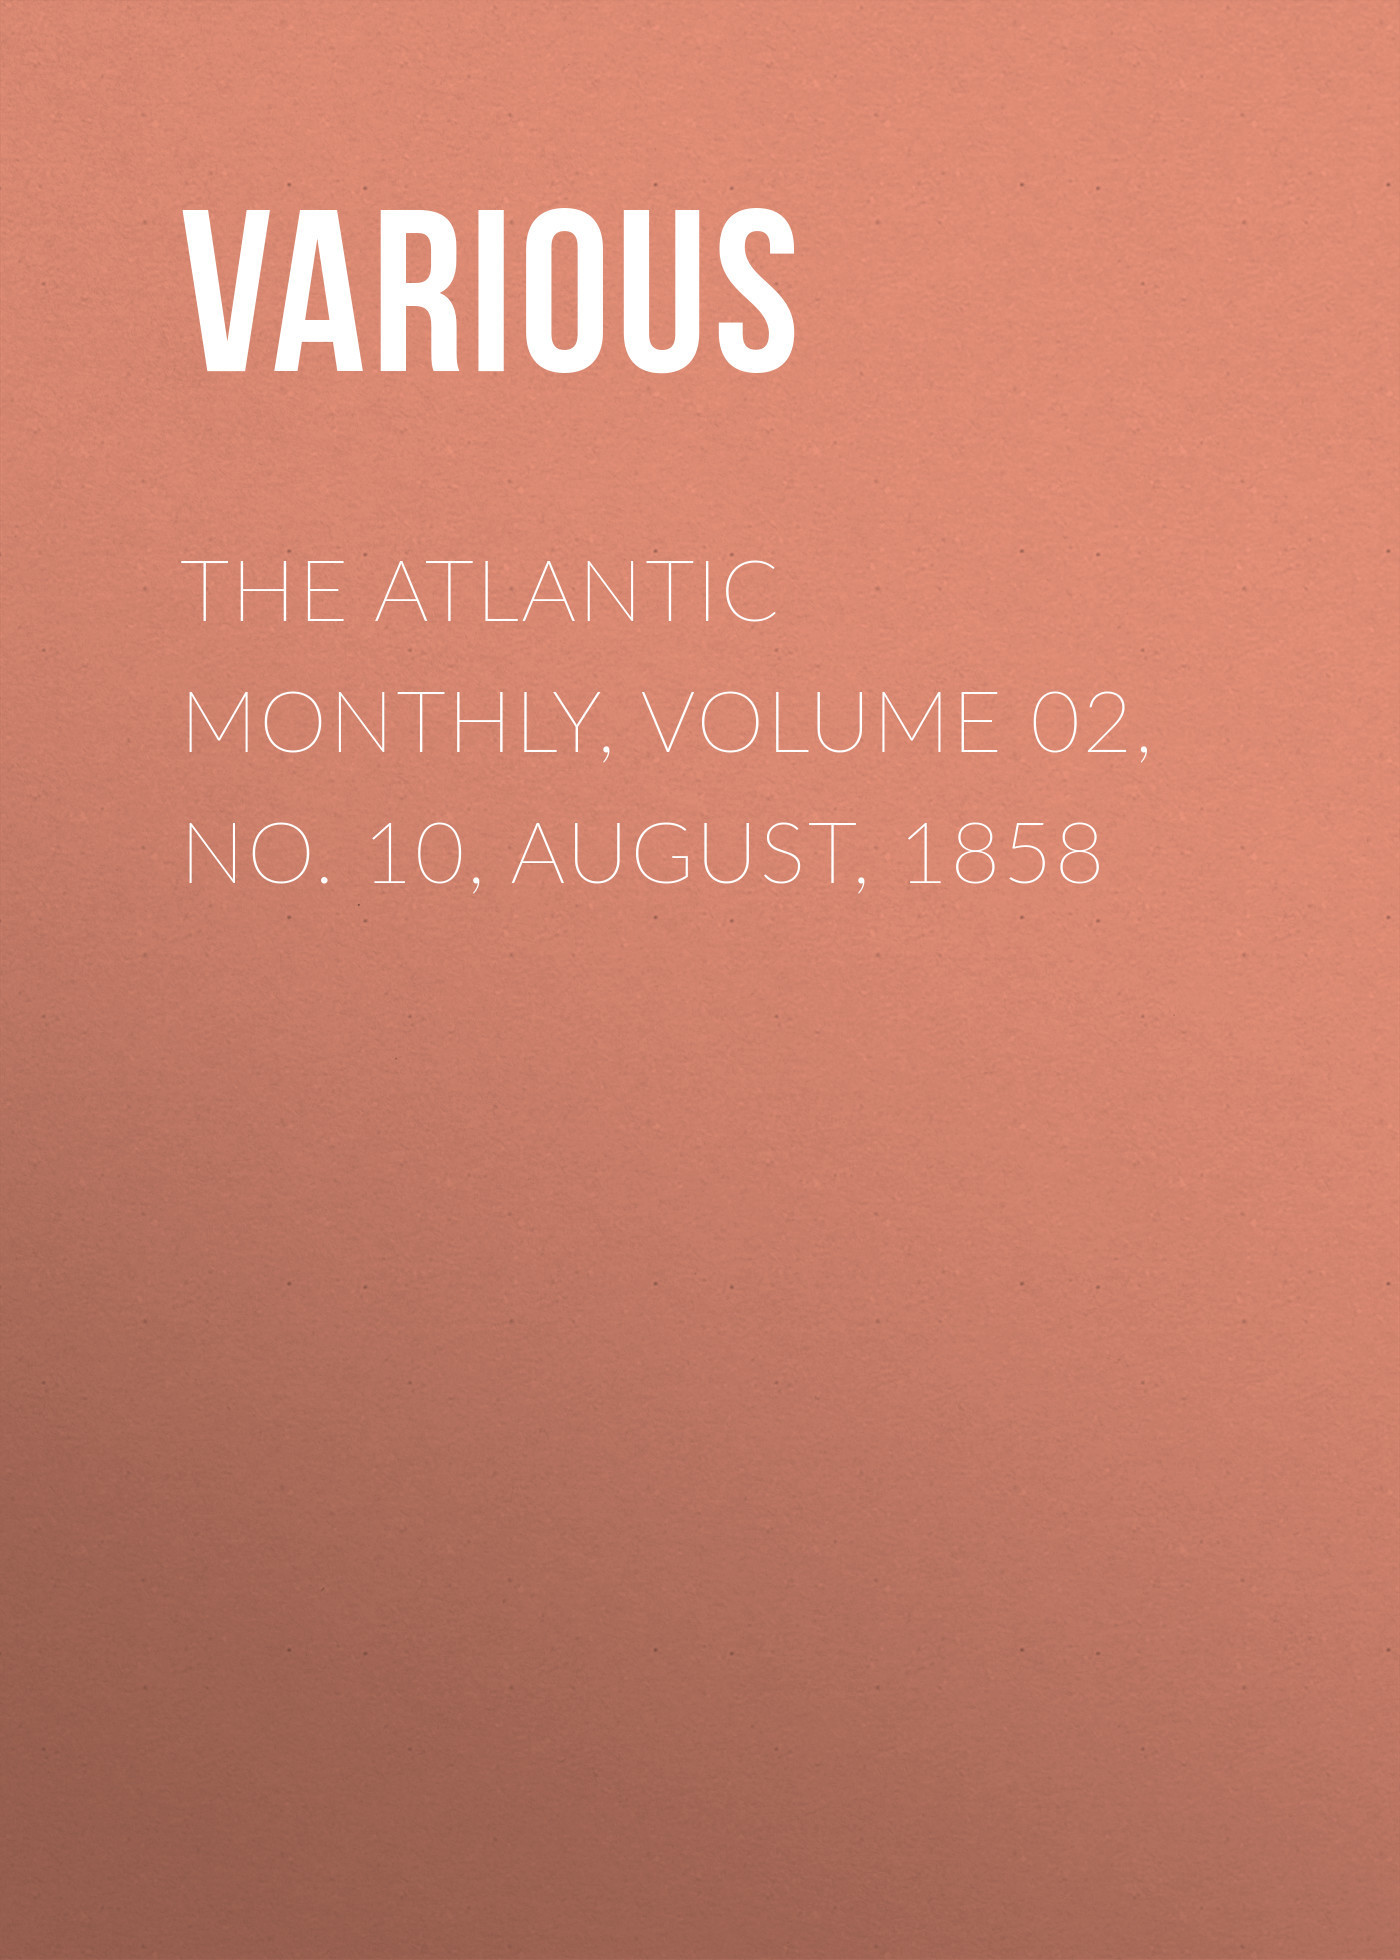 The Atlantic Monthly, Volume 02, No. 10, August, 1858